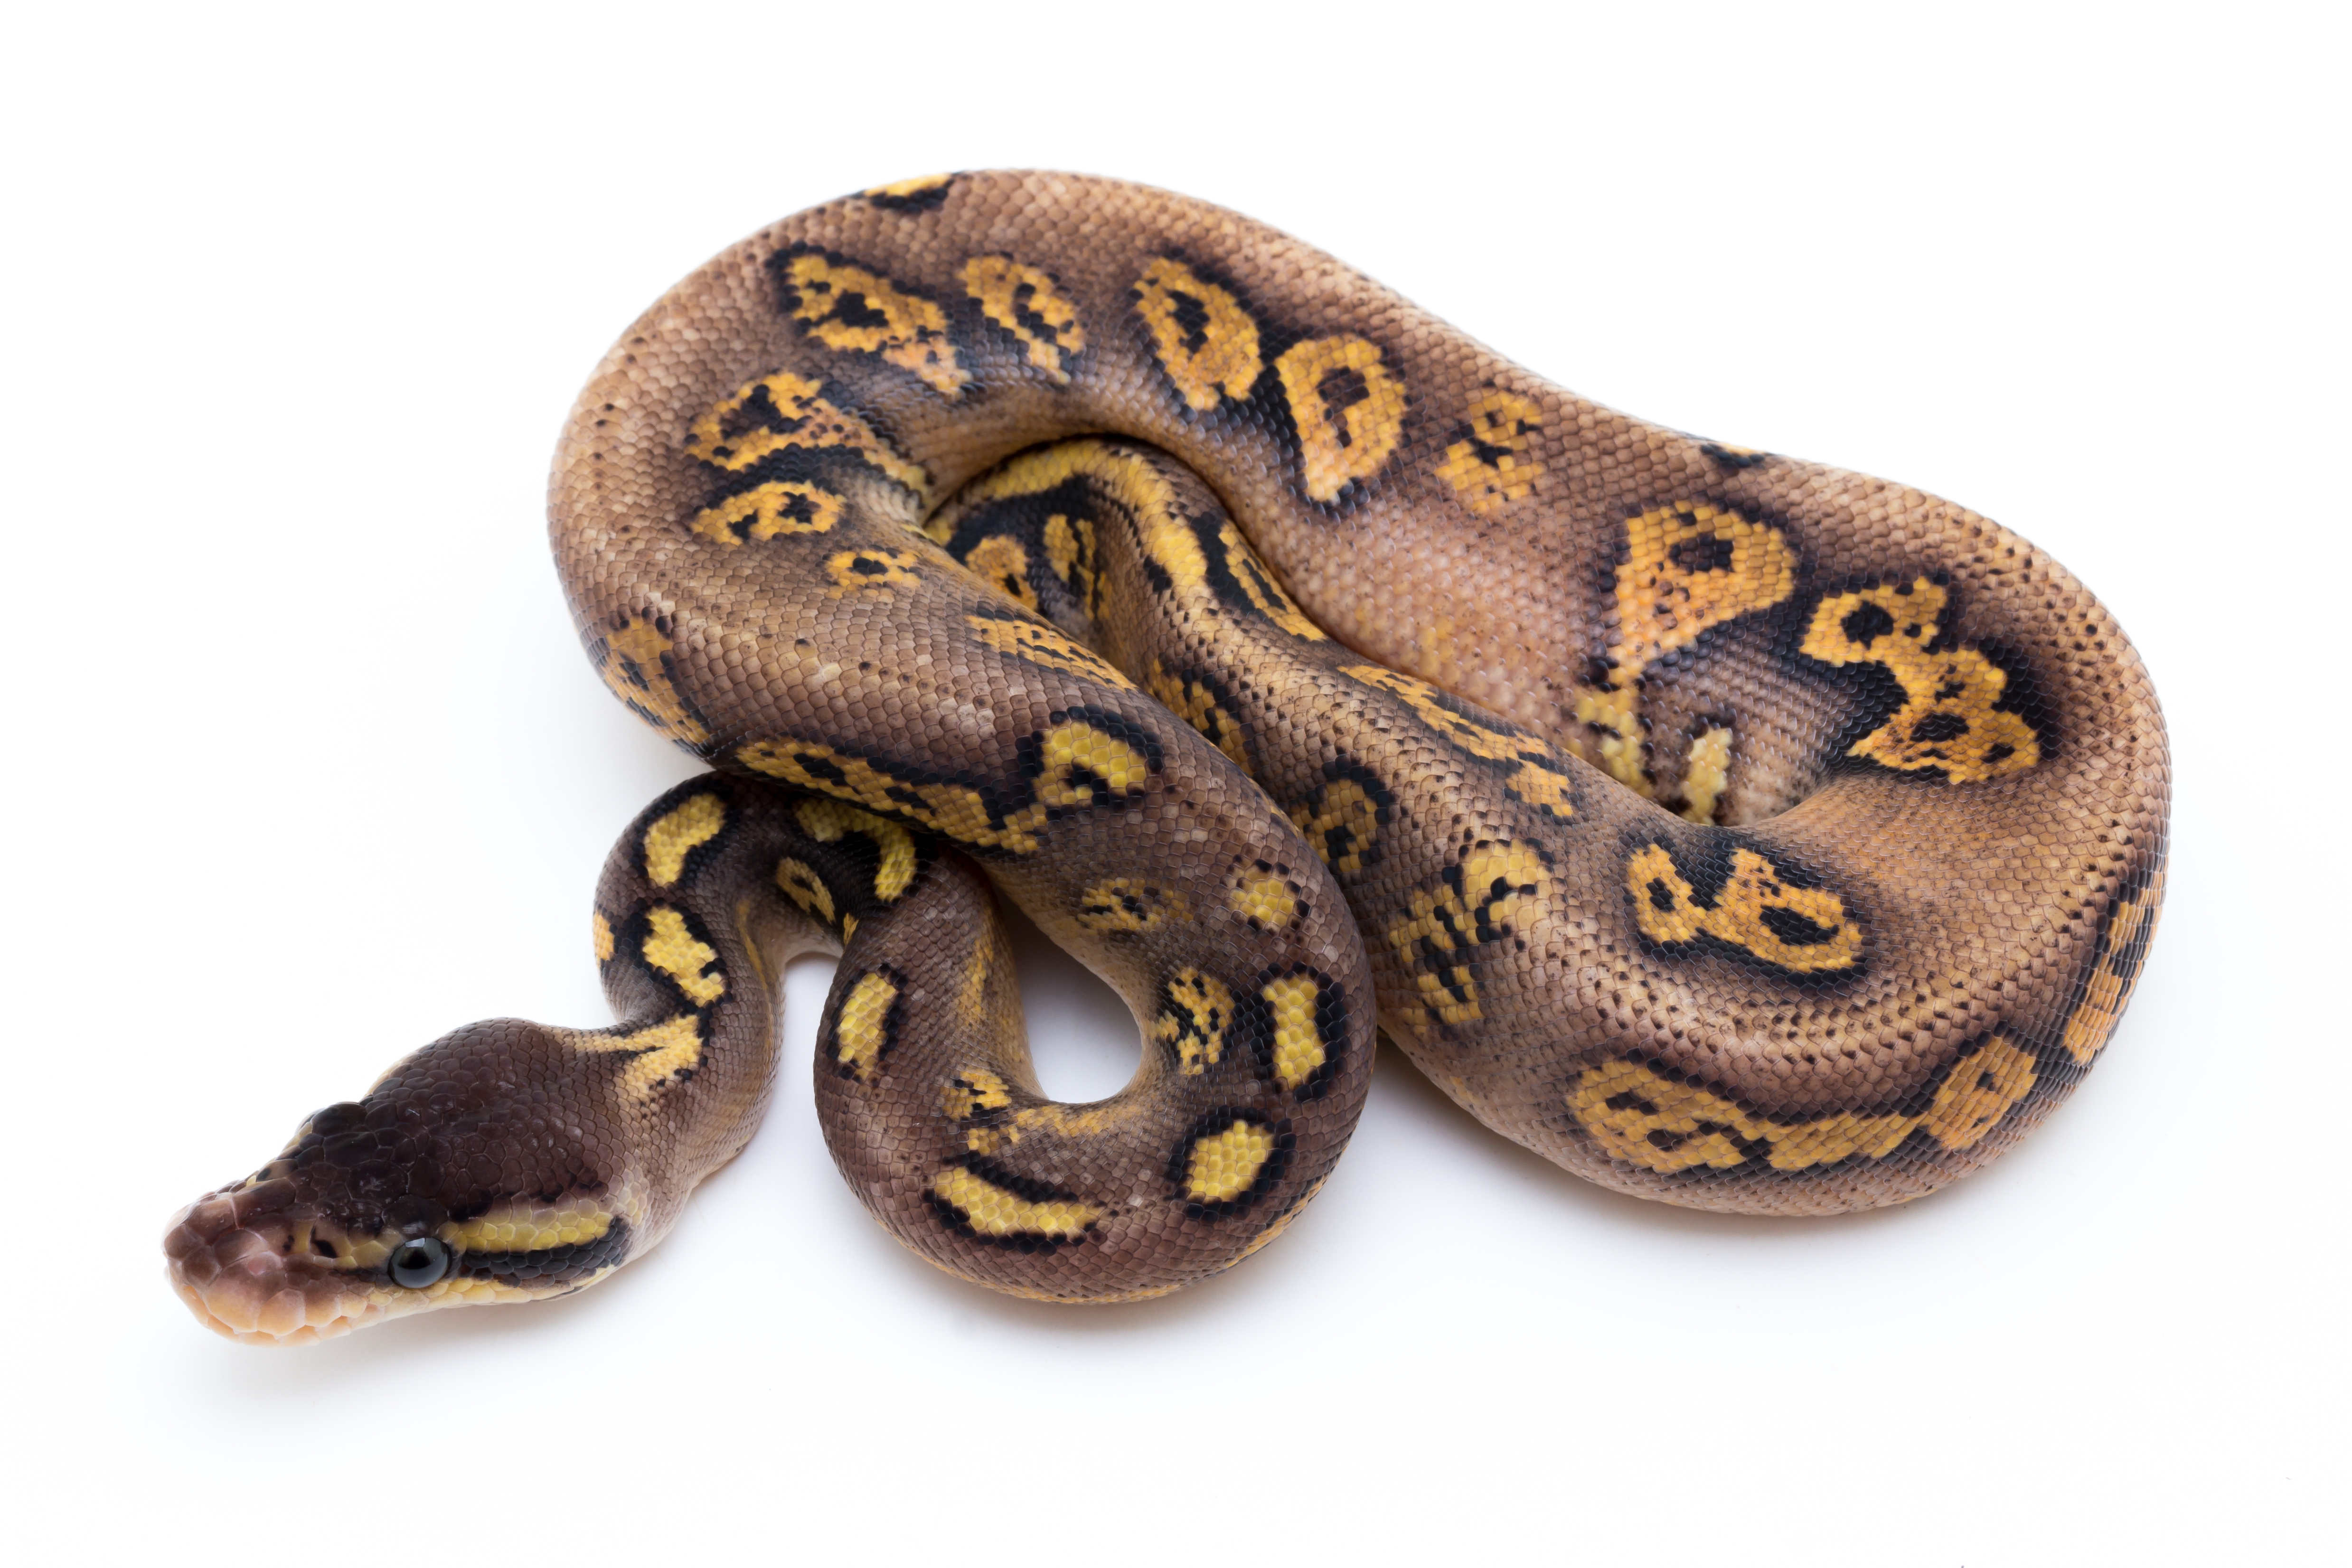 Pastel Yellowbelly Fader Cinder Ball Python